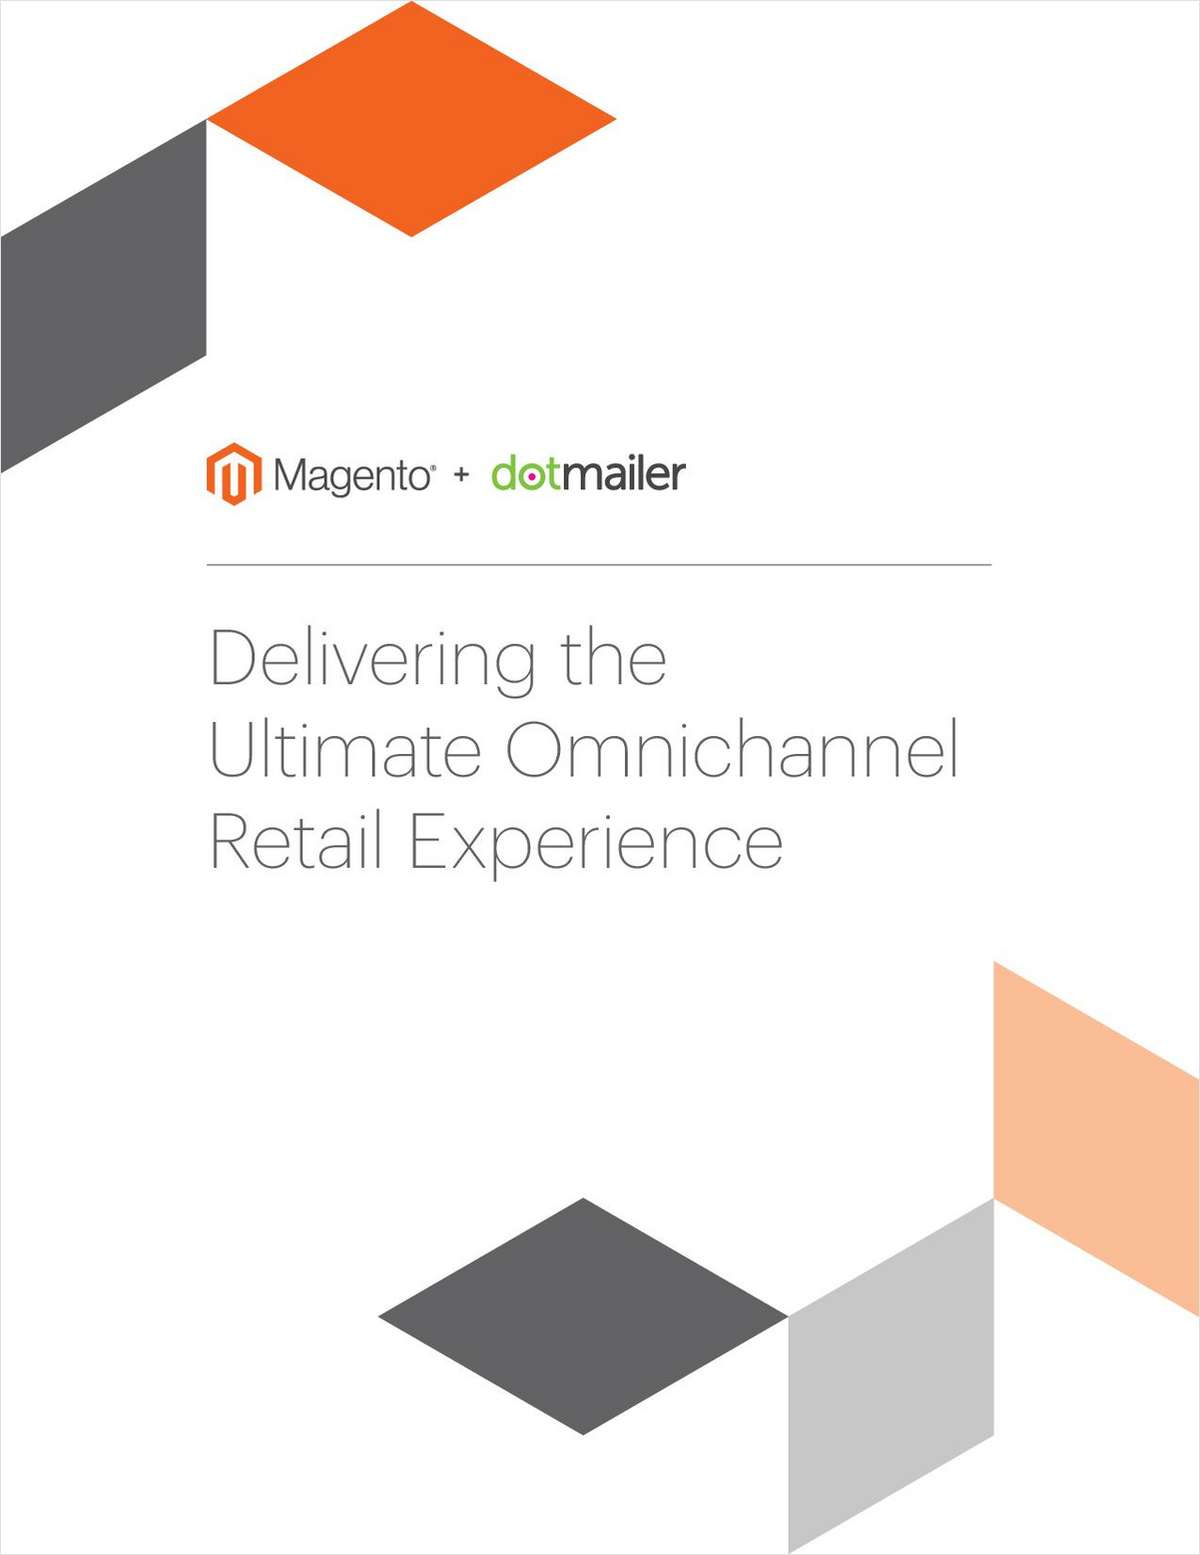 Delivering The Ultimate Omnichannel Retail Experience